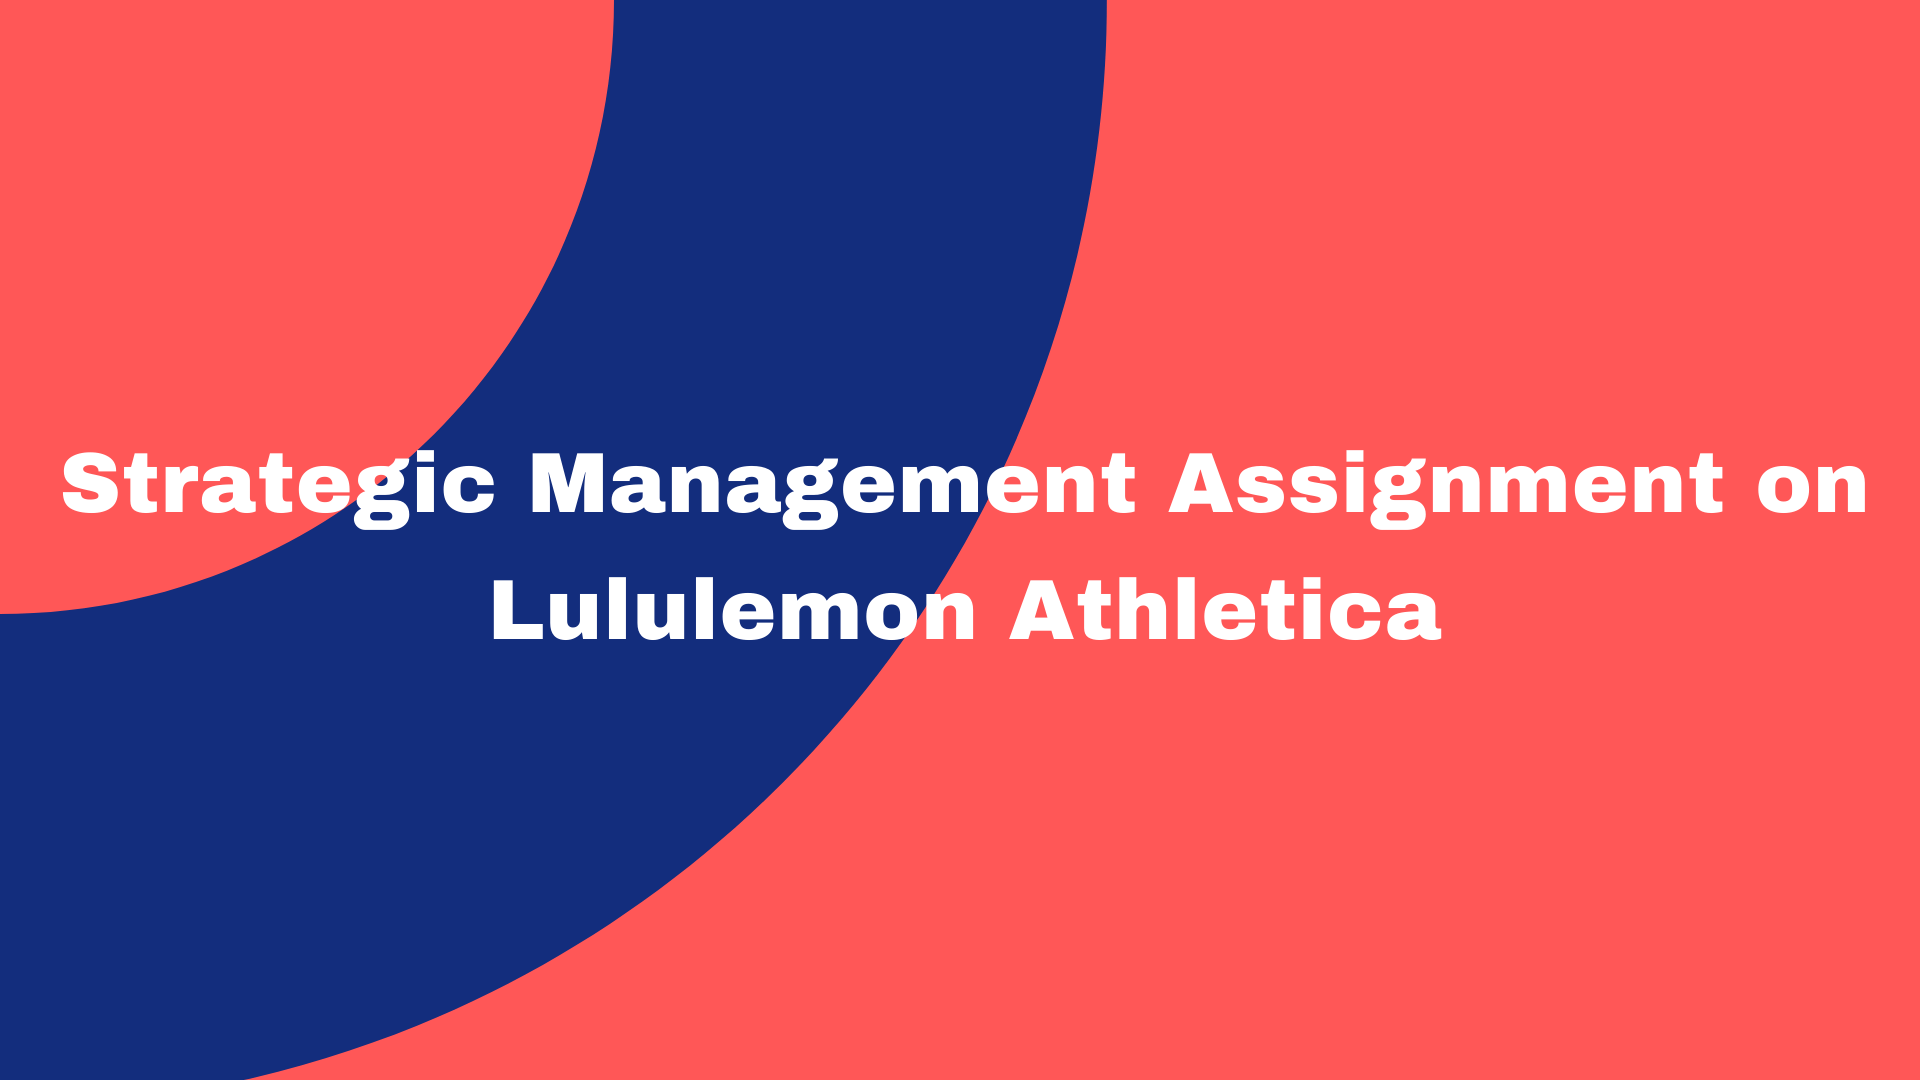 Strategic Management Assignment on Lululemon Athletica